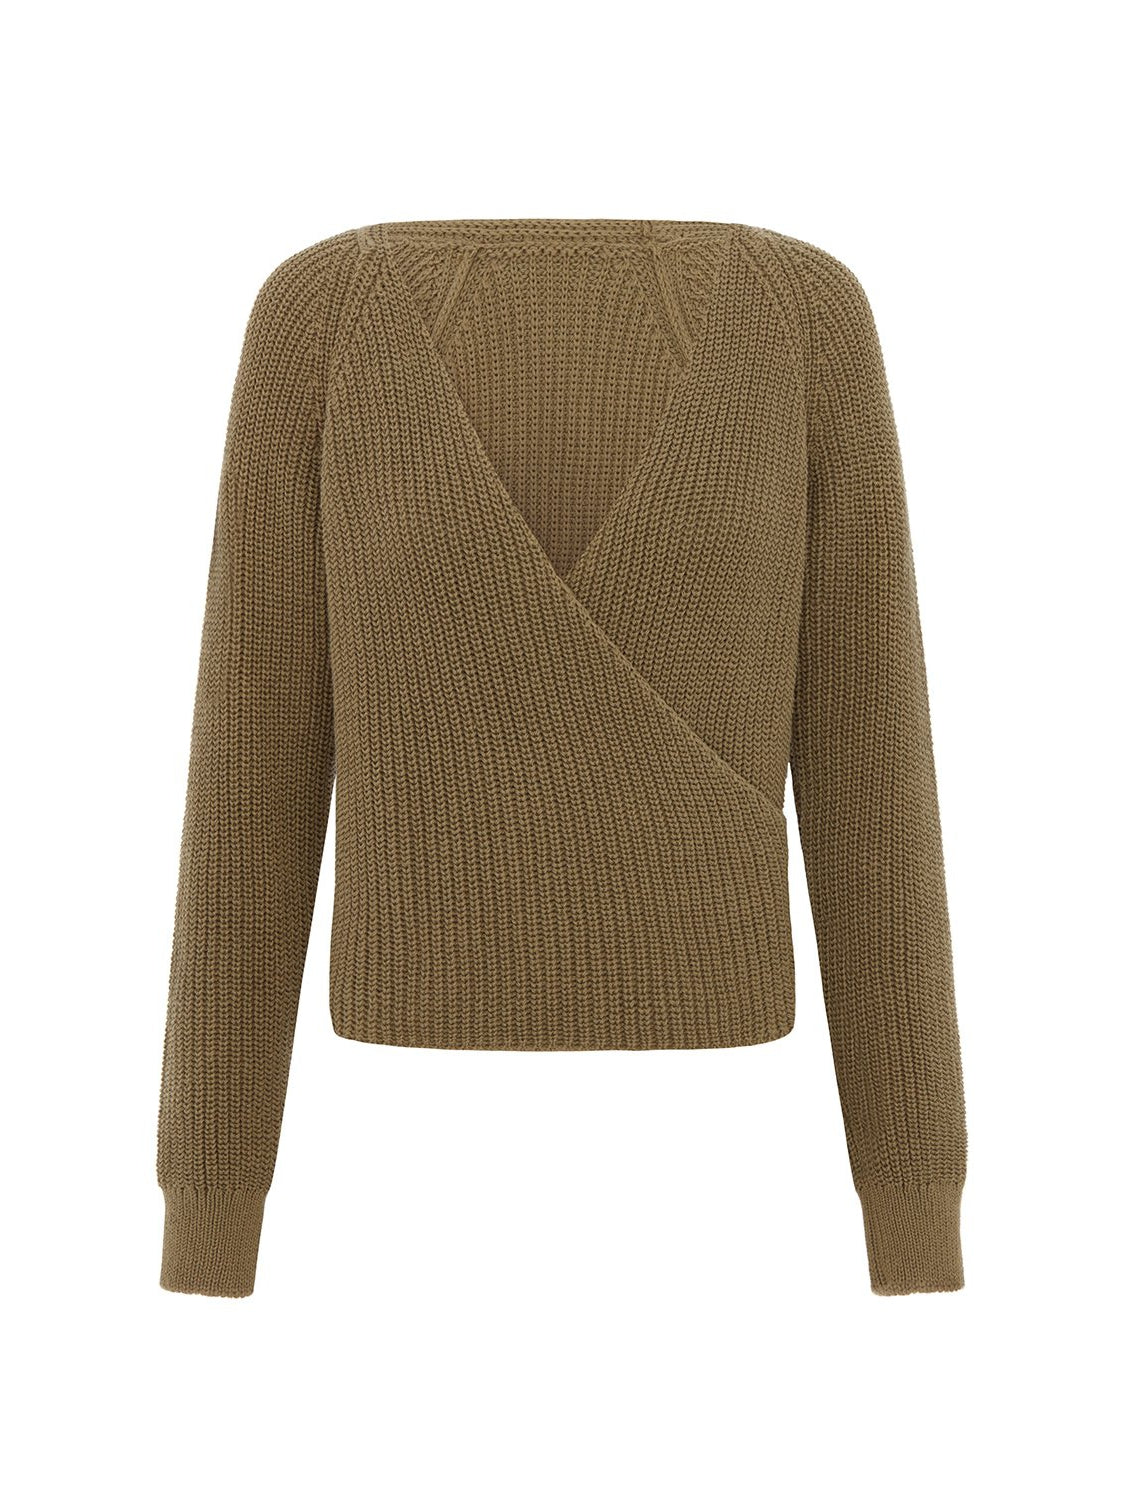 Sabinna Zoe Cotton Knitted Sweater in Olive - LDC